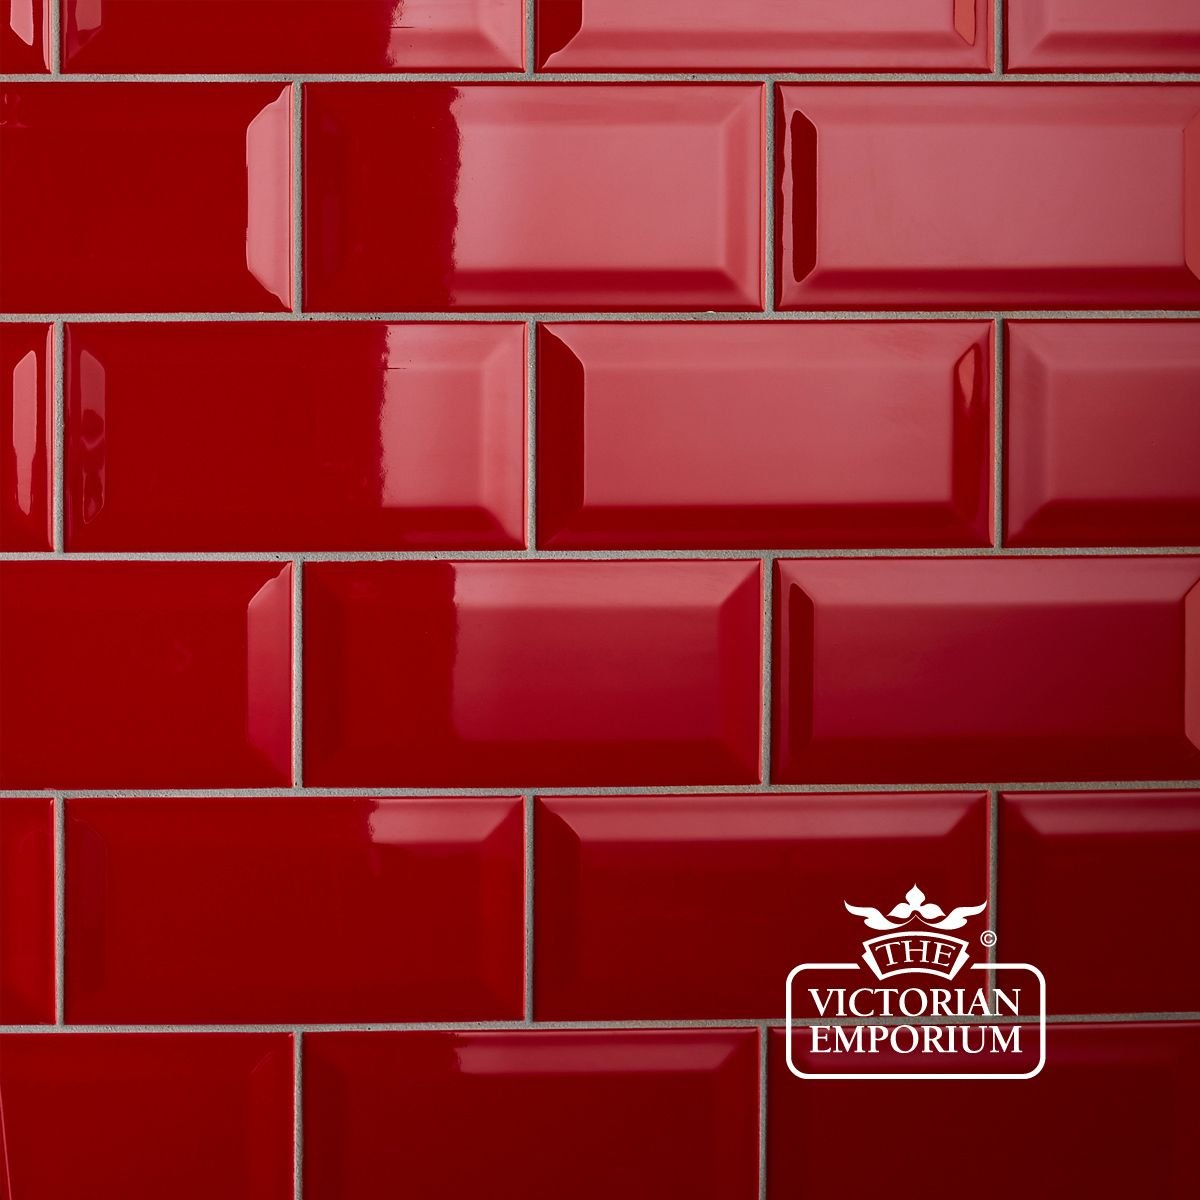 Subway Backsplash Tile Bevel Wall Tiles 100x200mm Red Interior Ceramic Wall Tiles